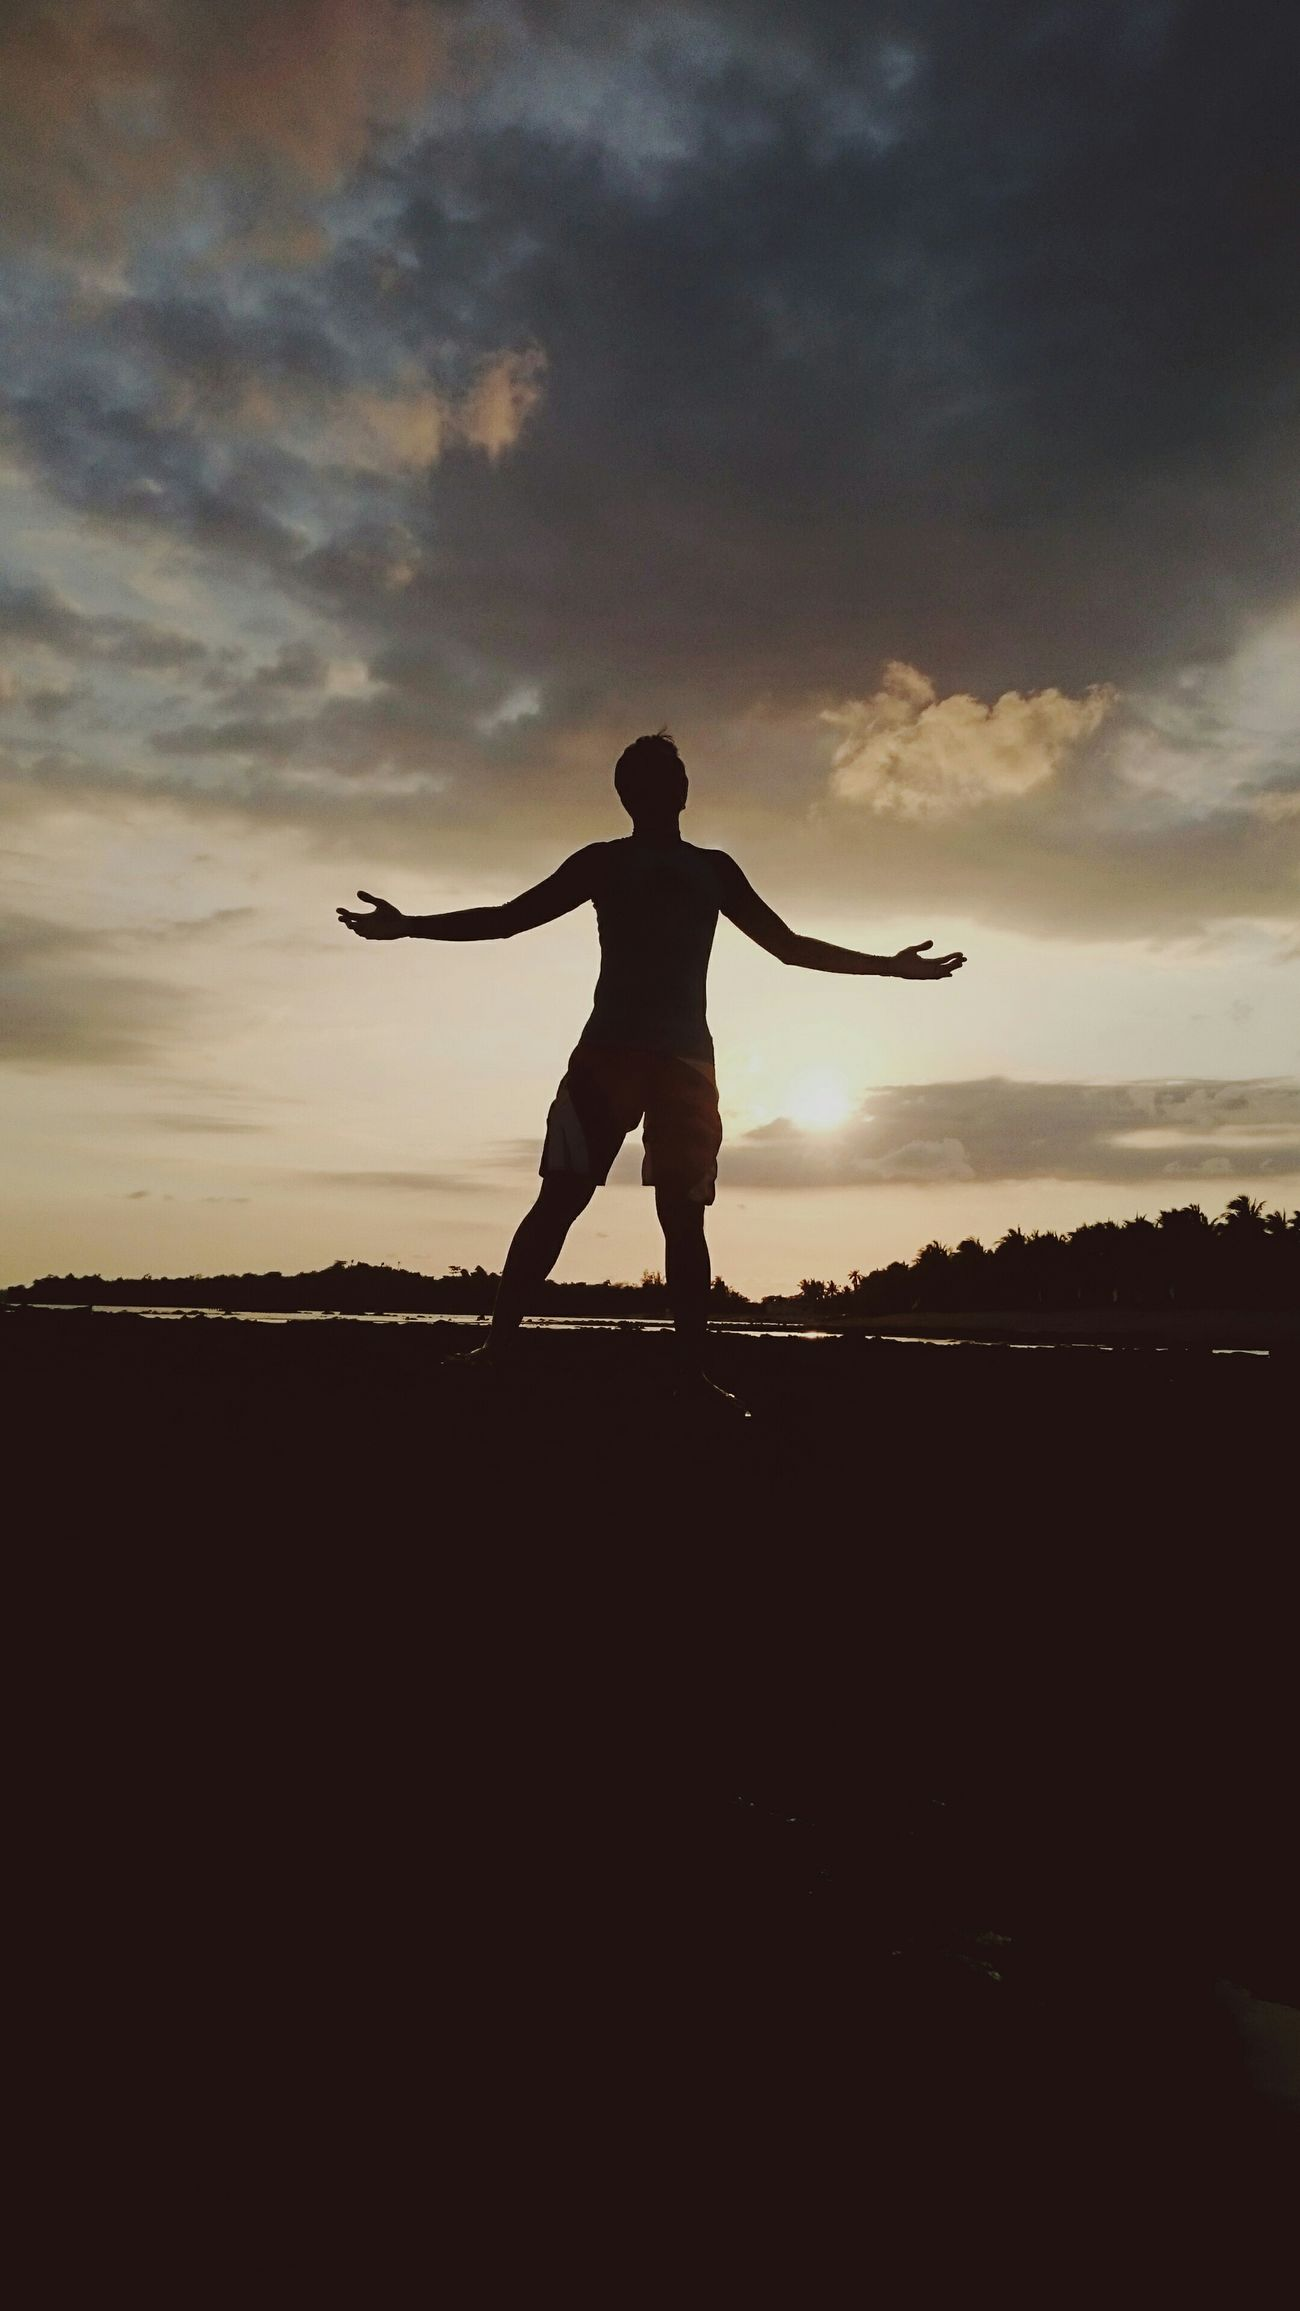 Hello EyeEm! Welcome back to me! Beachphotography Vscocam Sillouette Oblation